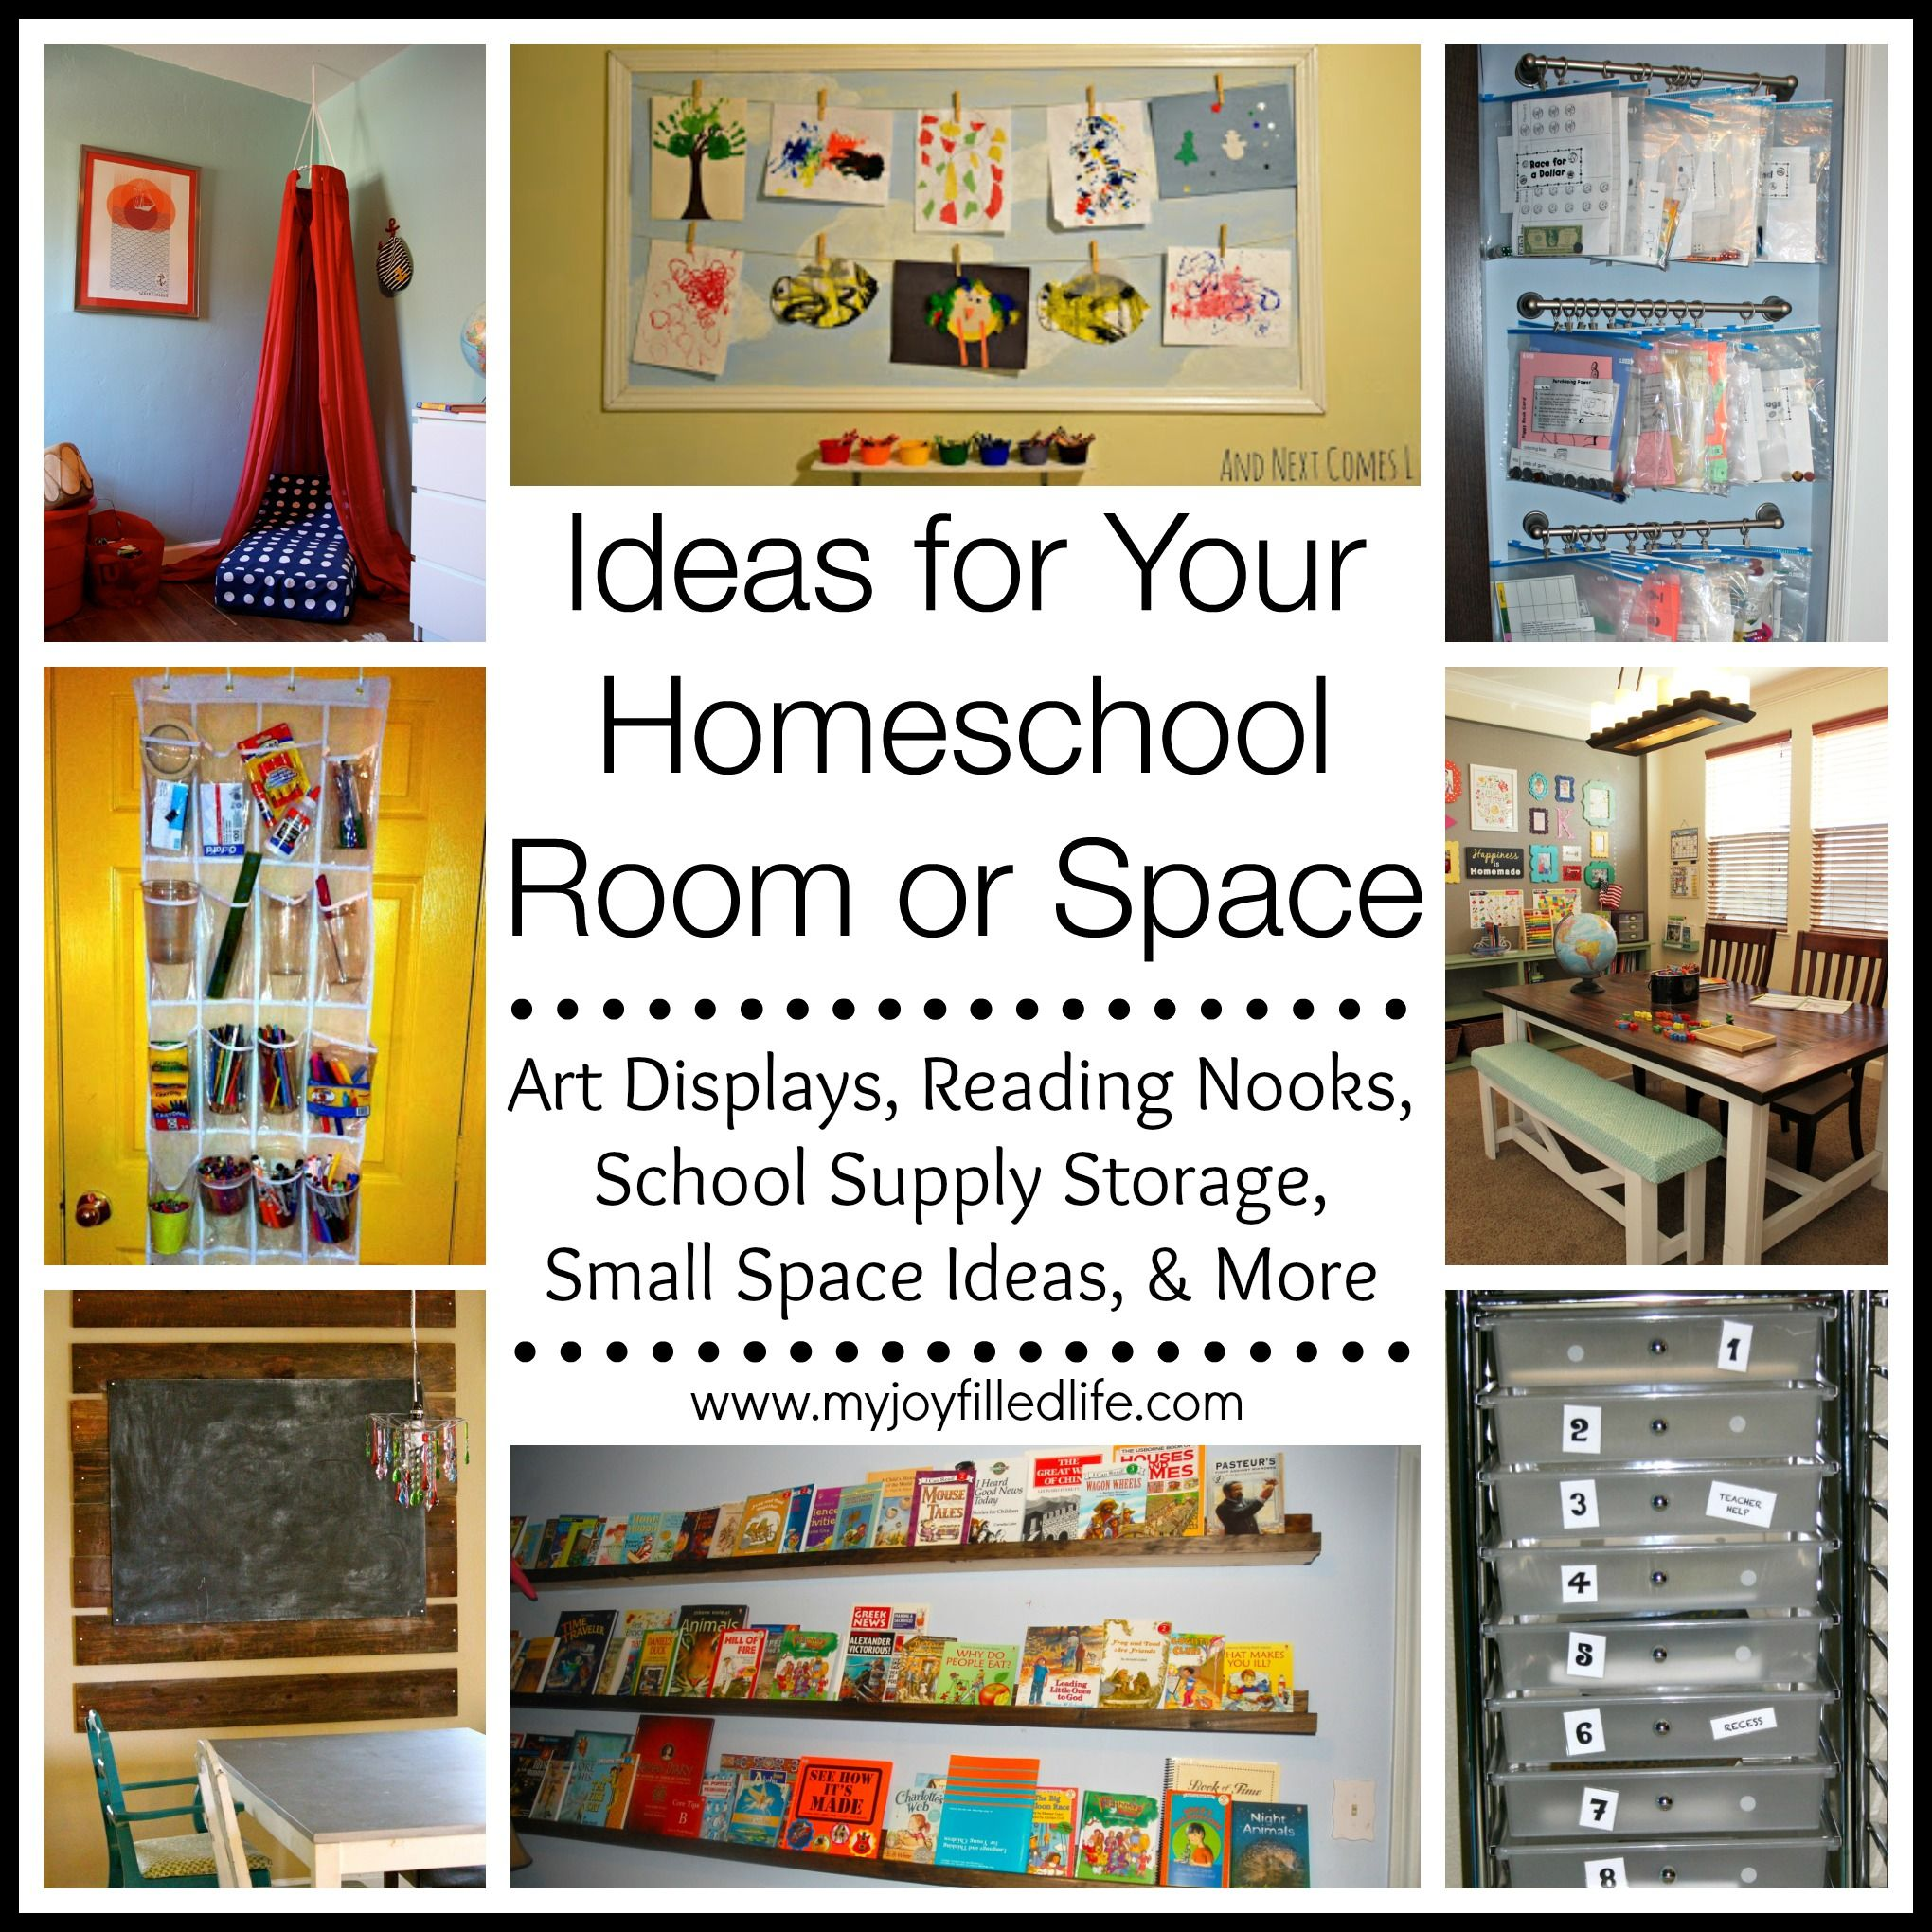 Ideas For Your Homeschool Room Or Space Homeschool Ideas And Spaces